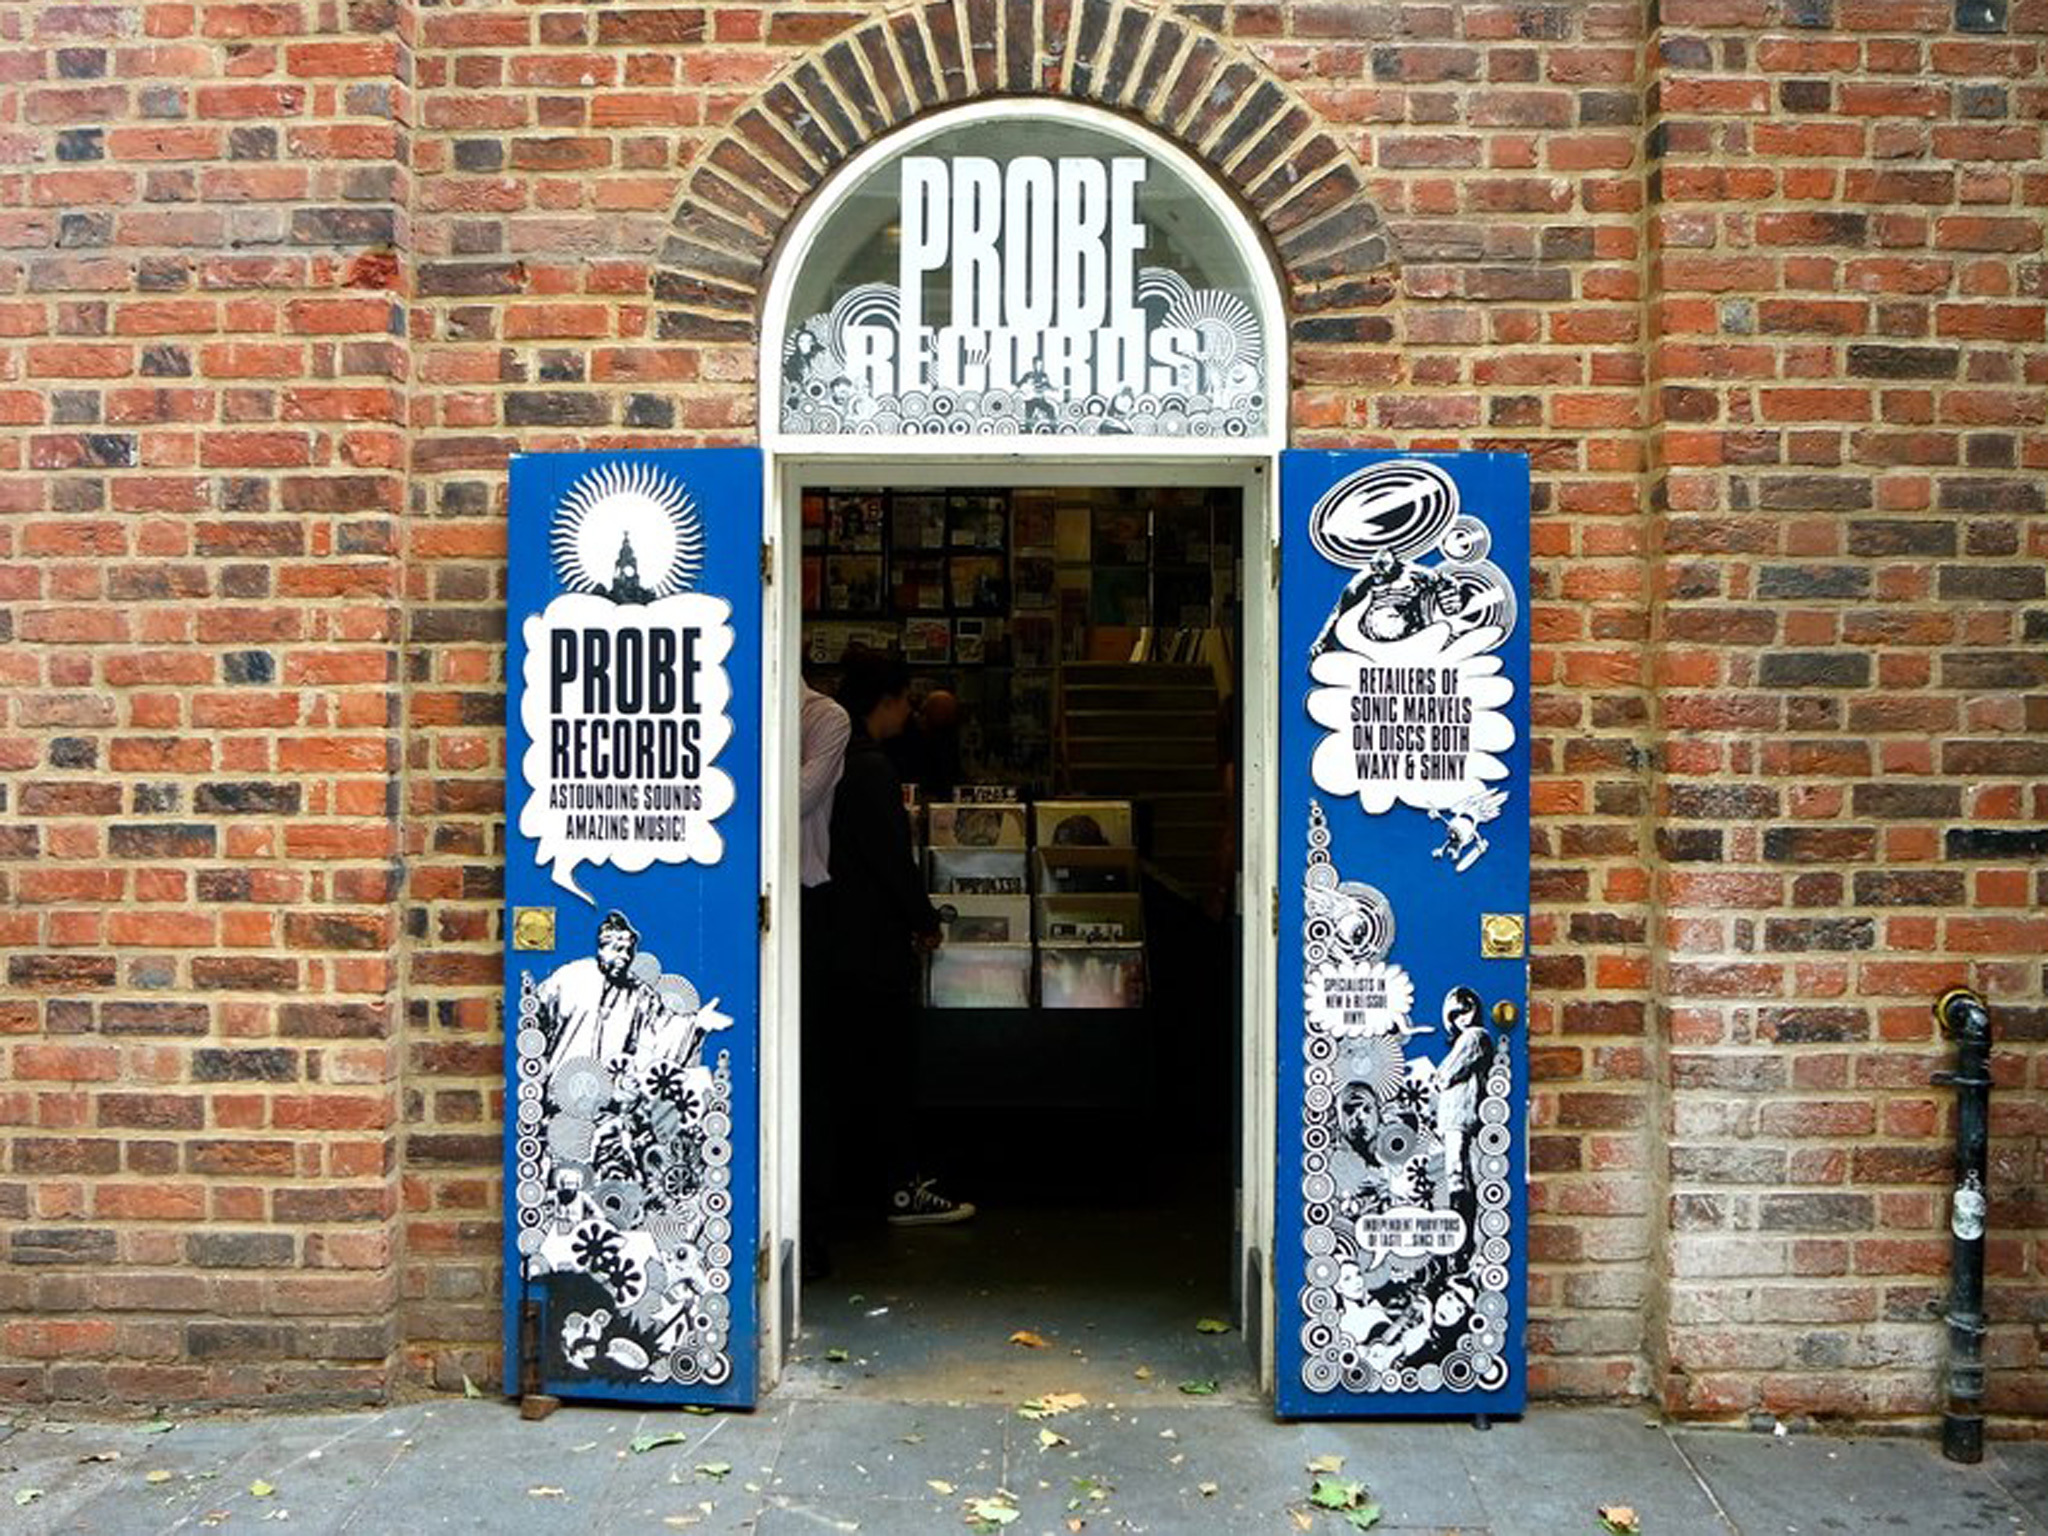 The exterior of Probe Records